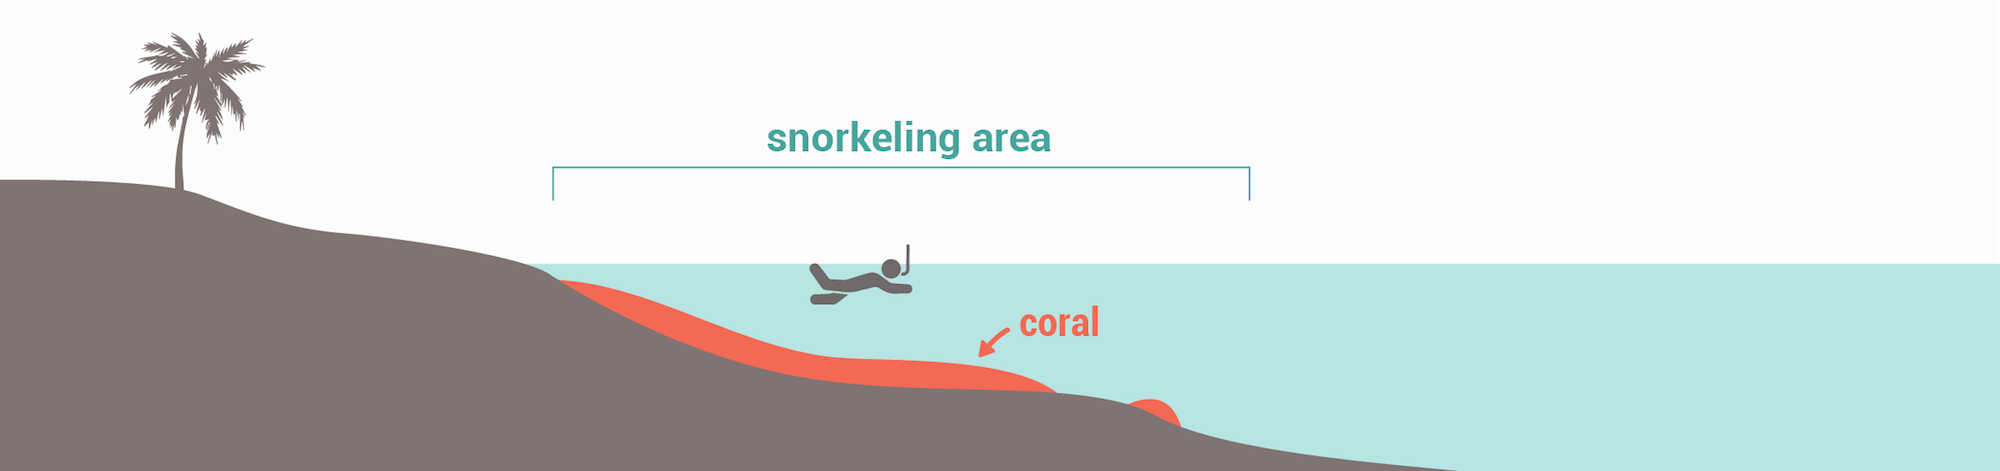 Snorkeling spots types - Narrow fringing reef